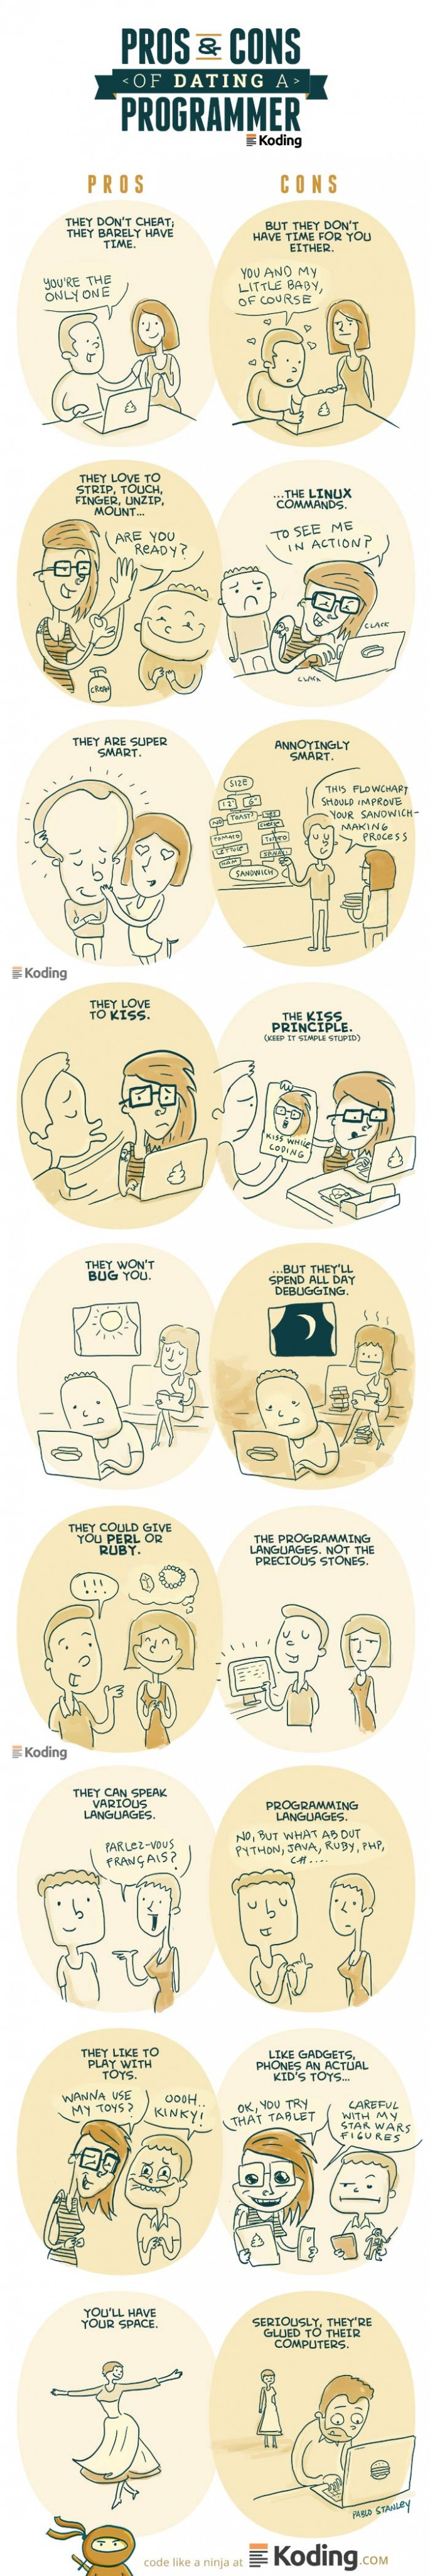 Pros-And-Cons-Dating-a-Programmer-685x4100